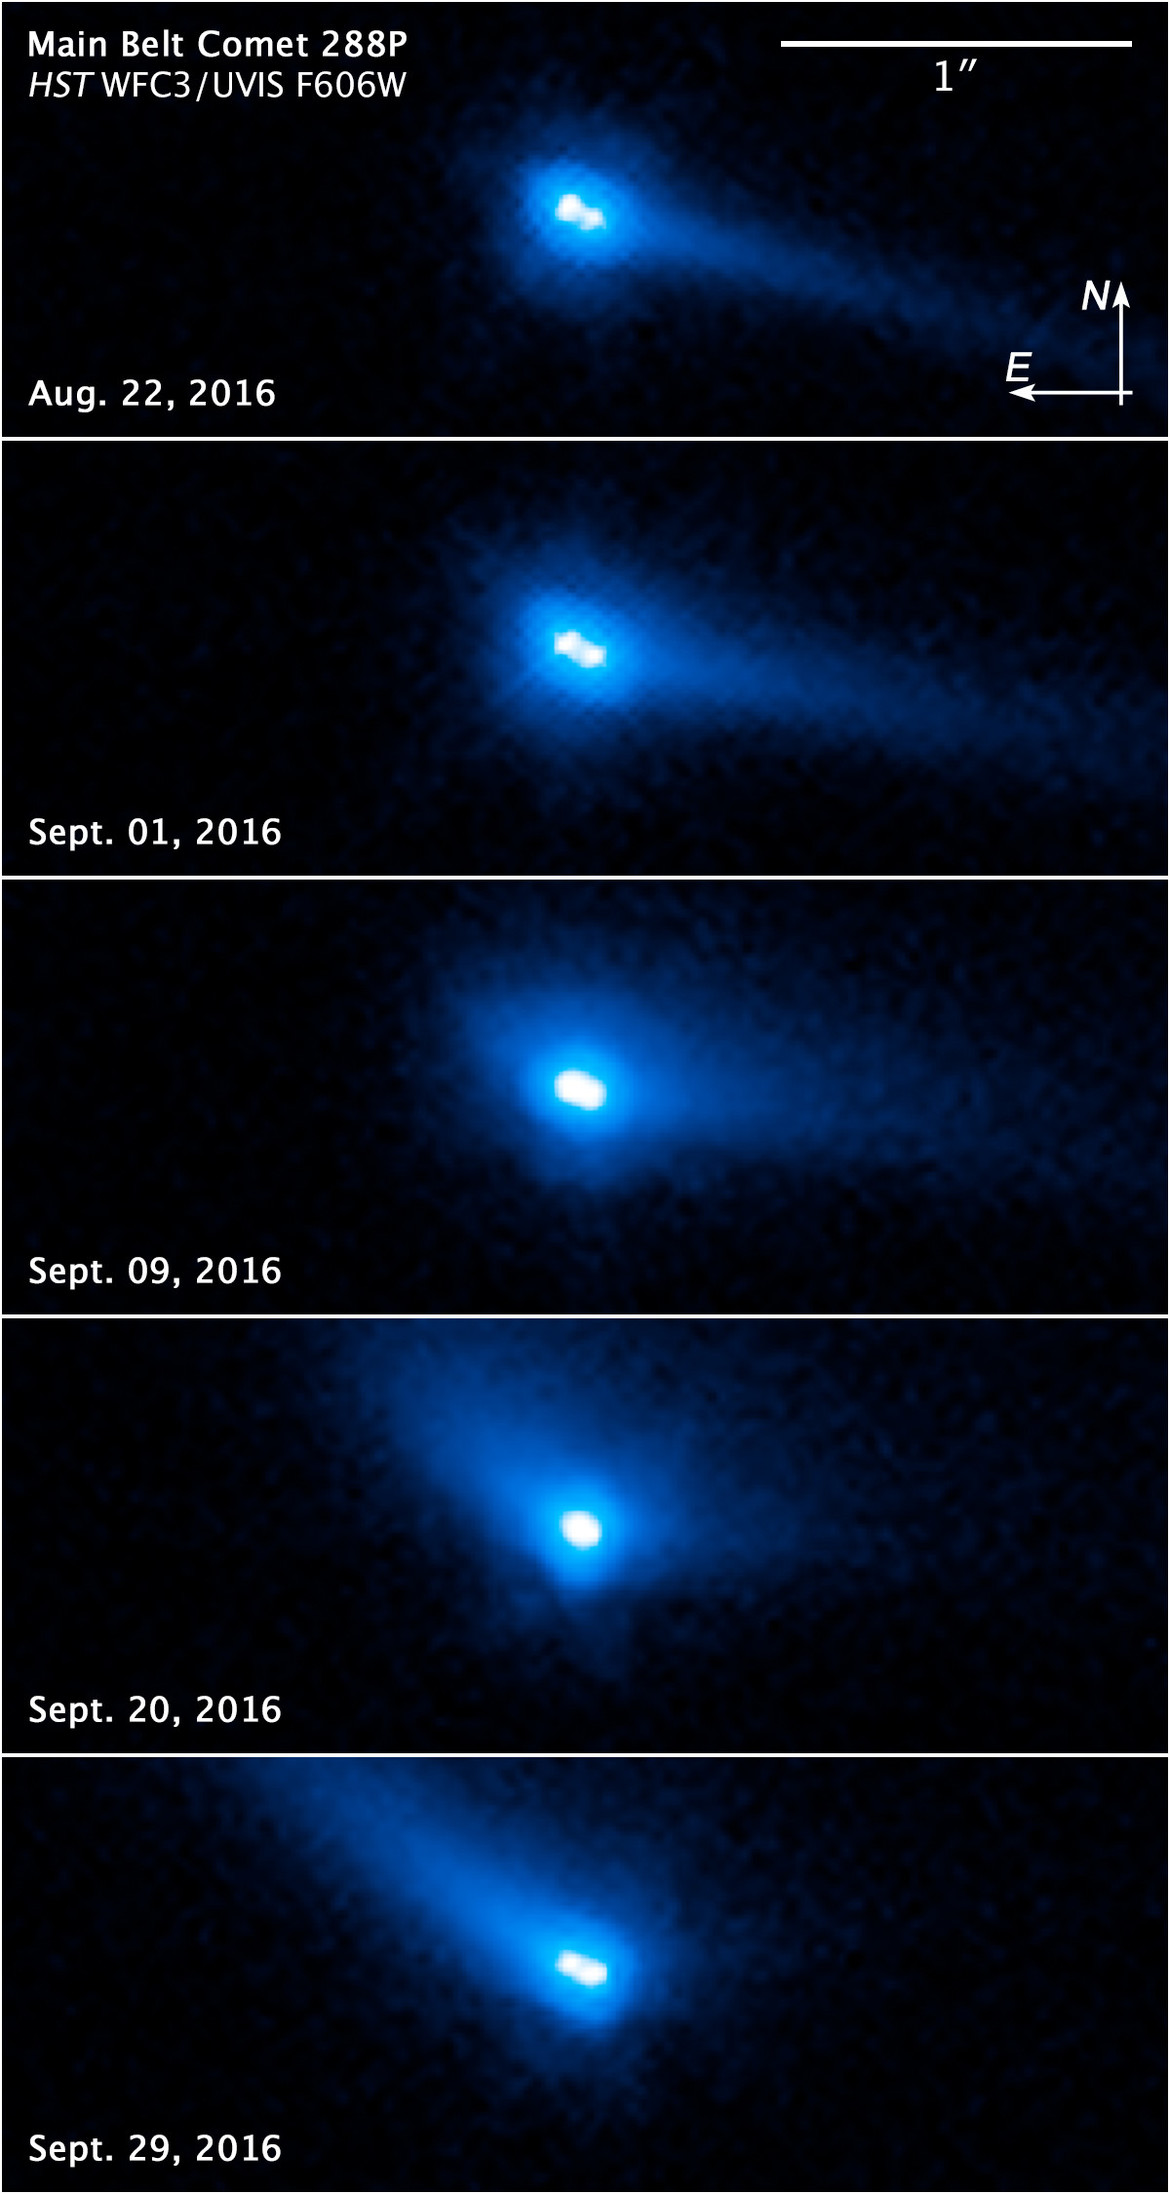 Images of the comet P/2006 VW139 using Hubble show it to be a binary pair of objects.Credit: NASA, ESA, and J. Agarwal (Max Planck Institute for Solar System Research)